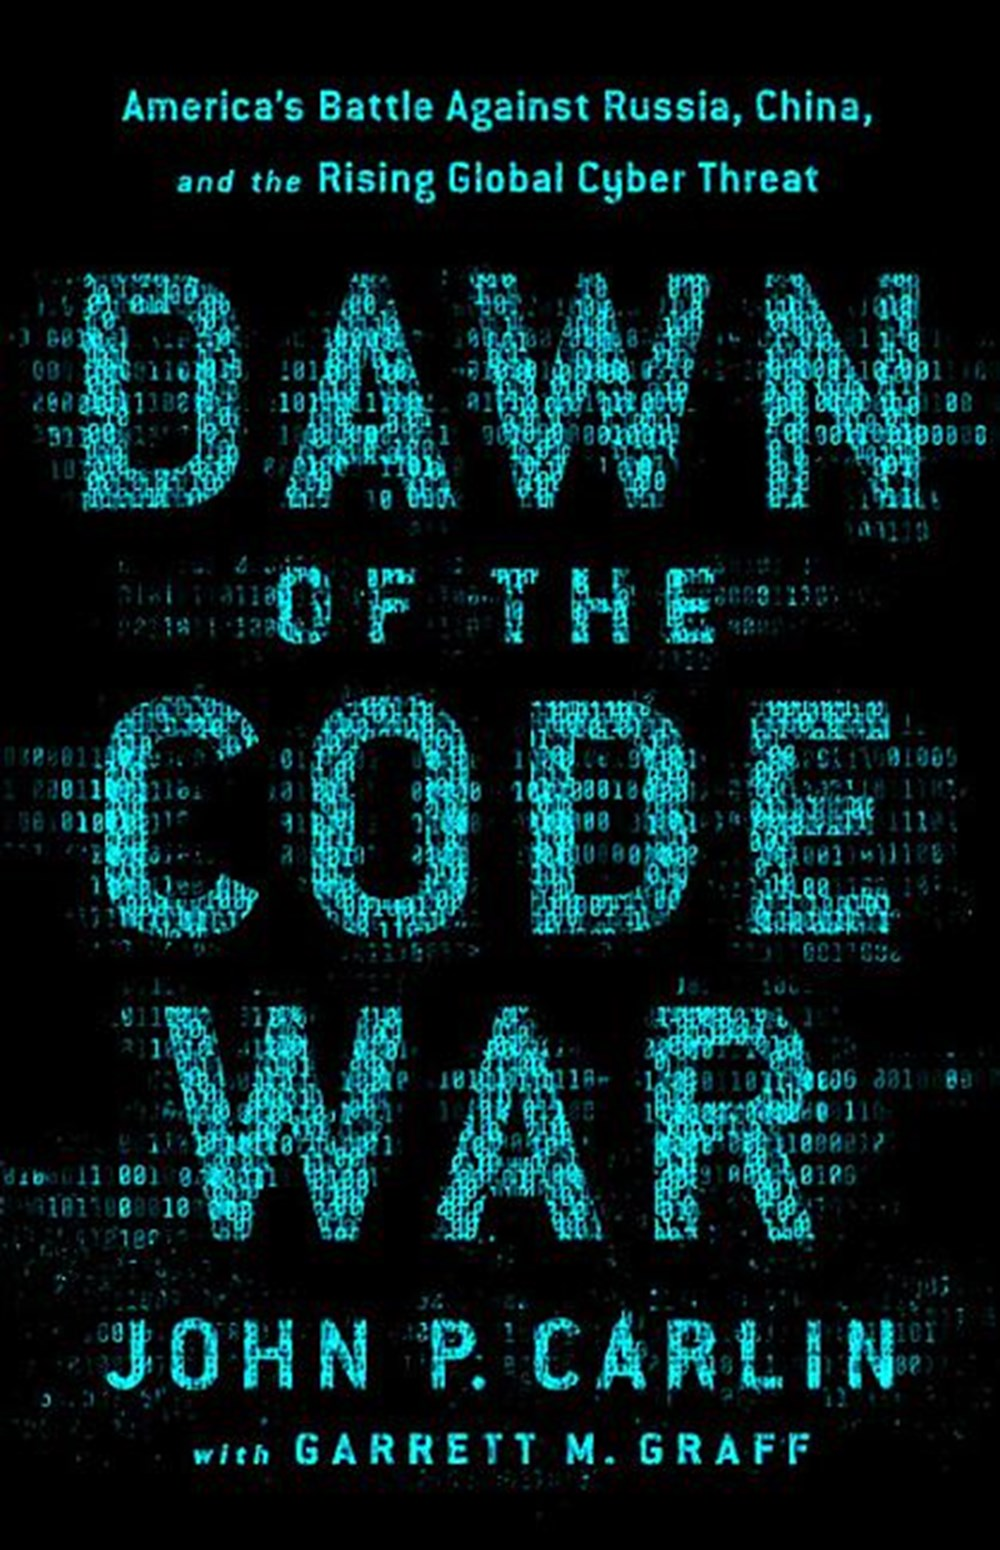 Dawn of the Code War America's Battle Against Russia, China, and the Rising Global Cyber Threat